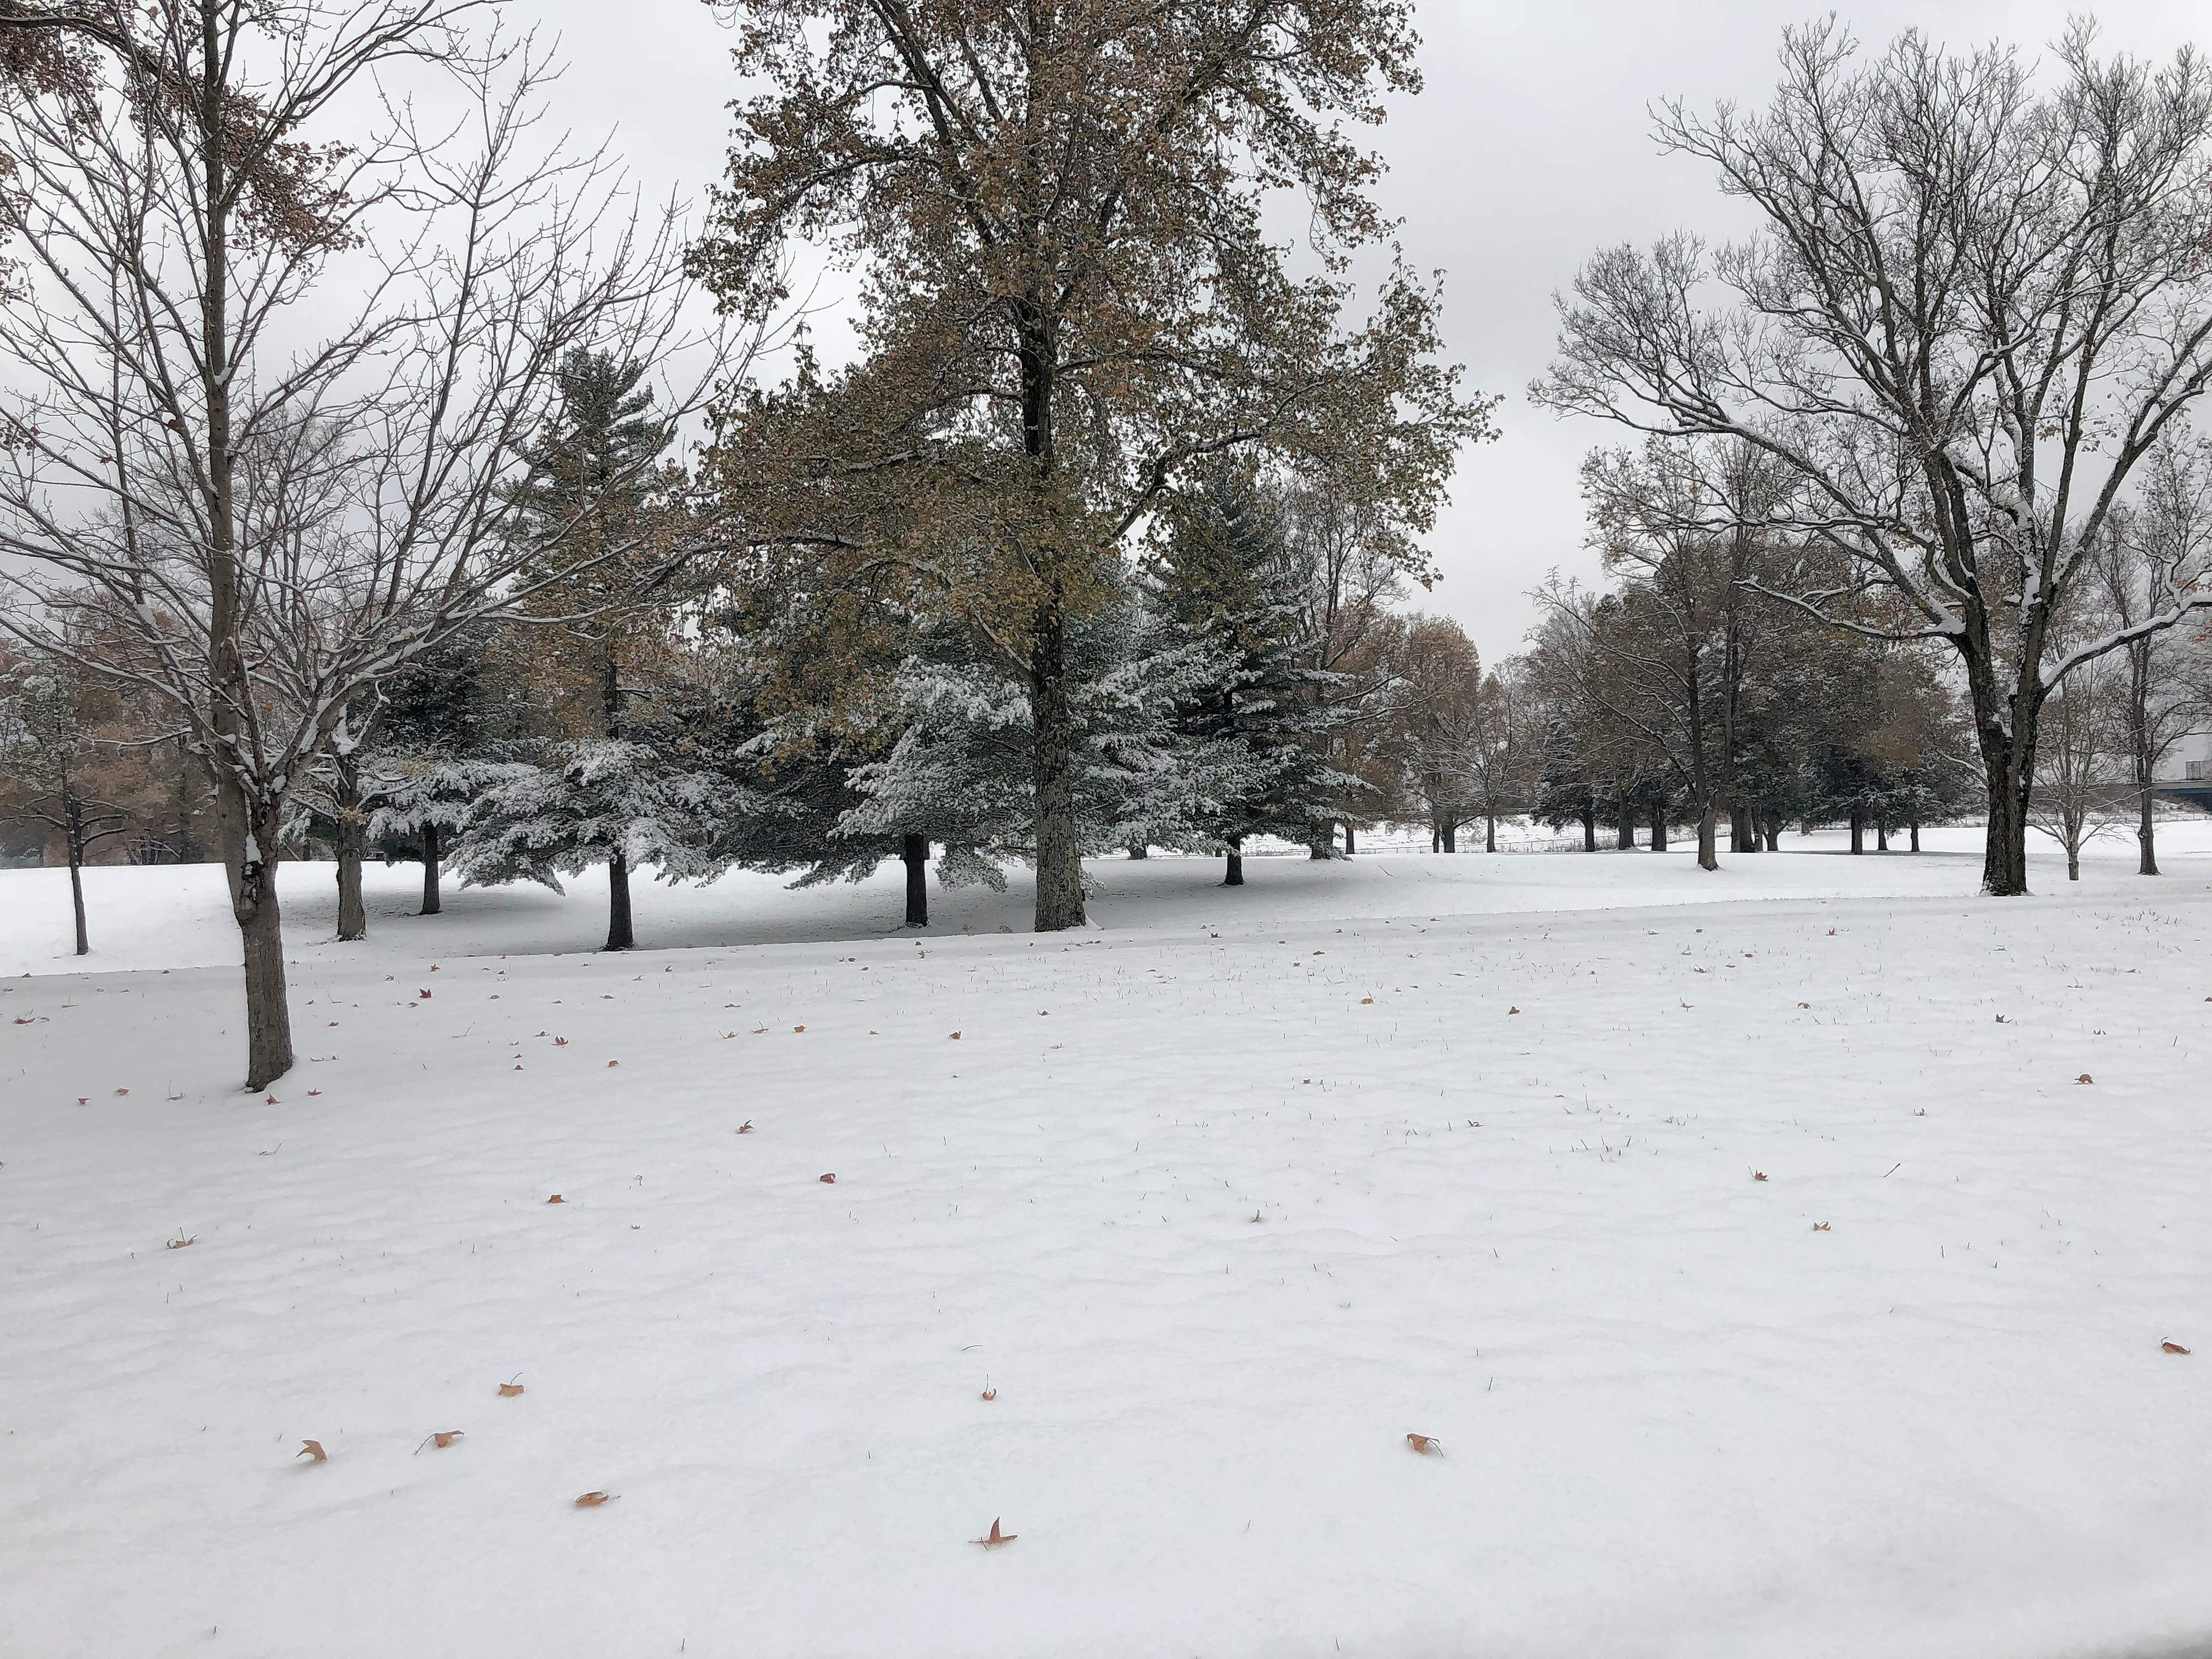 The early season snowfall made a picturesque scene on the grounds of the Marion Veterans Administration Medical Center.